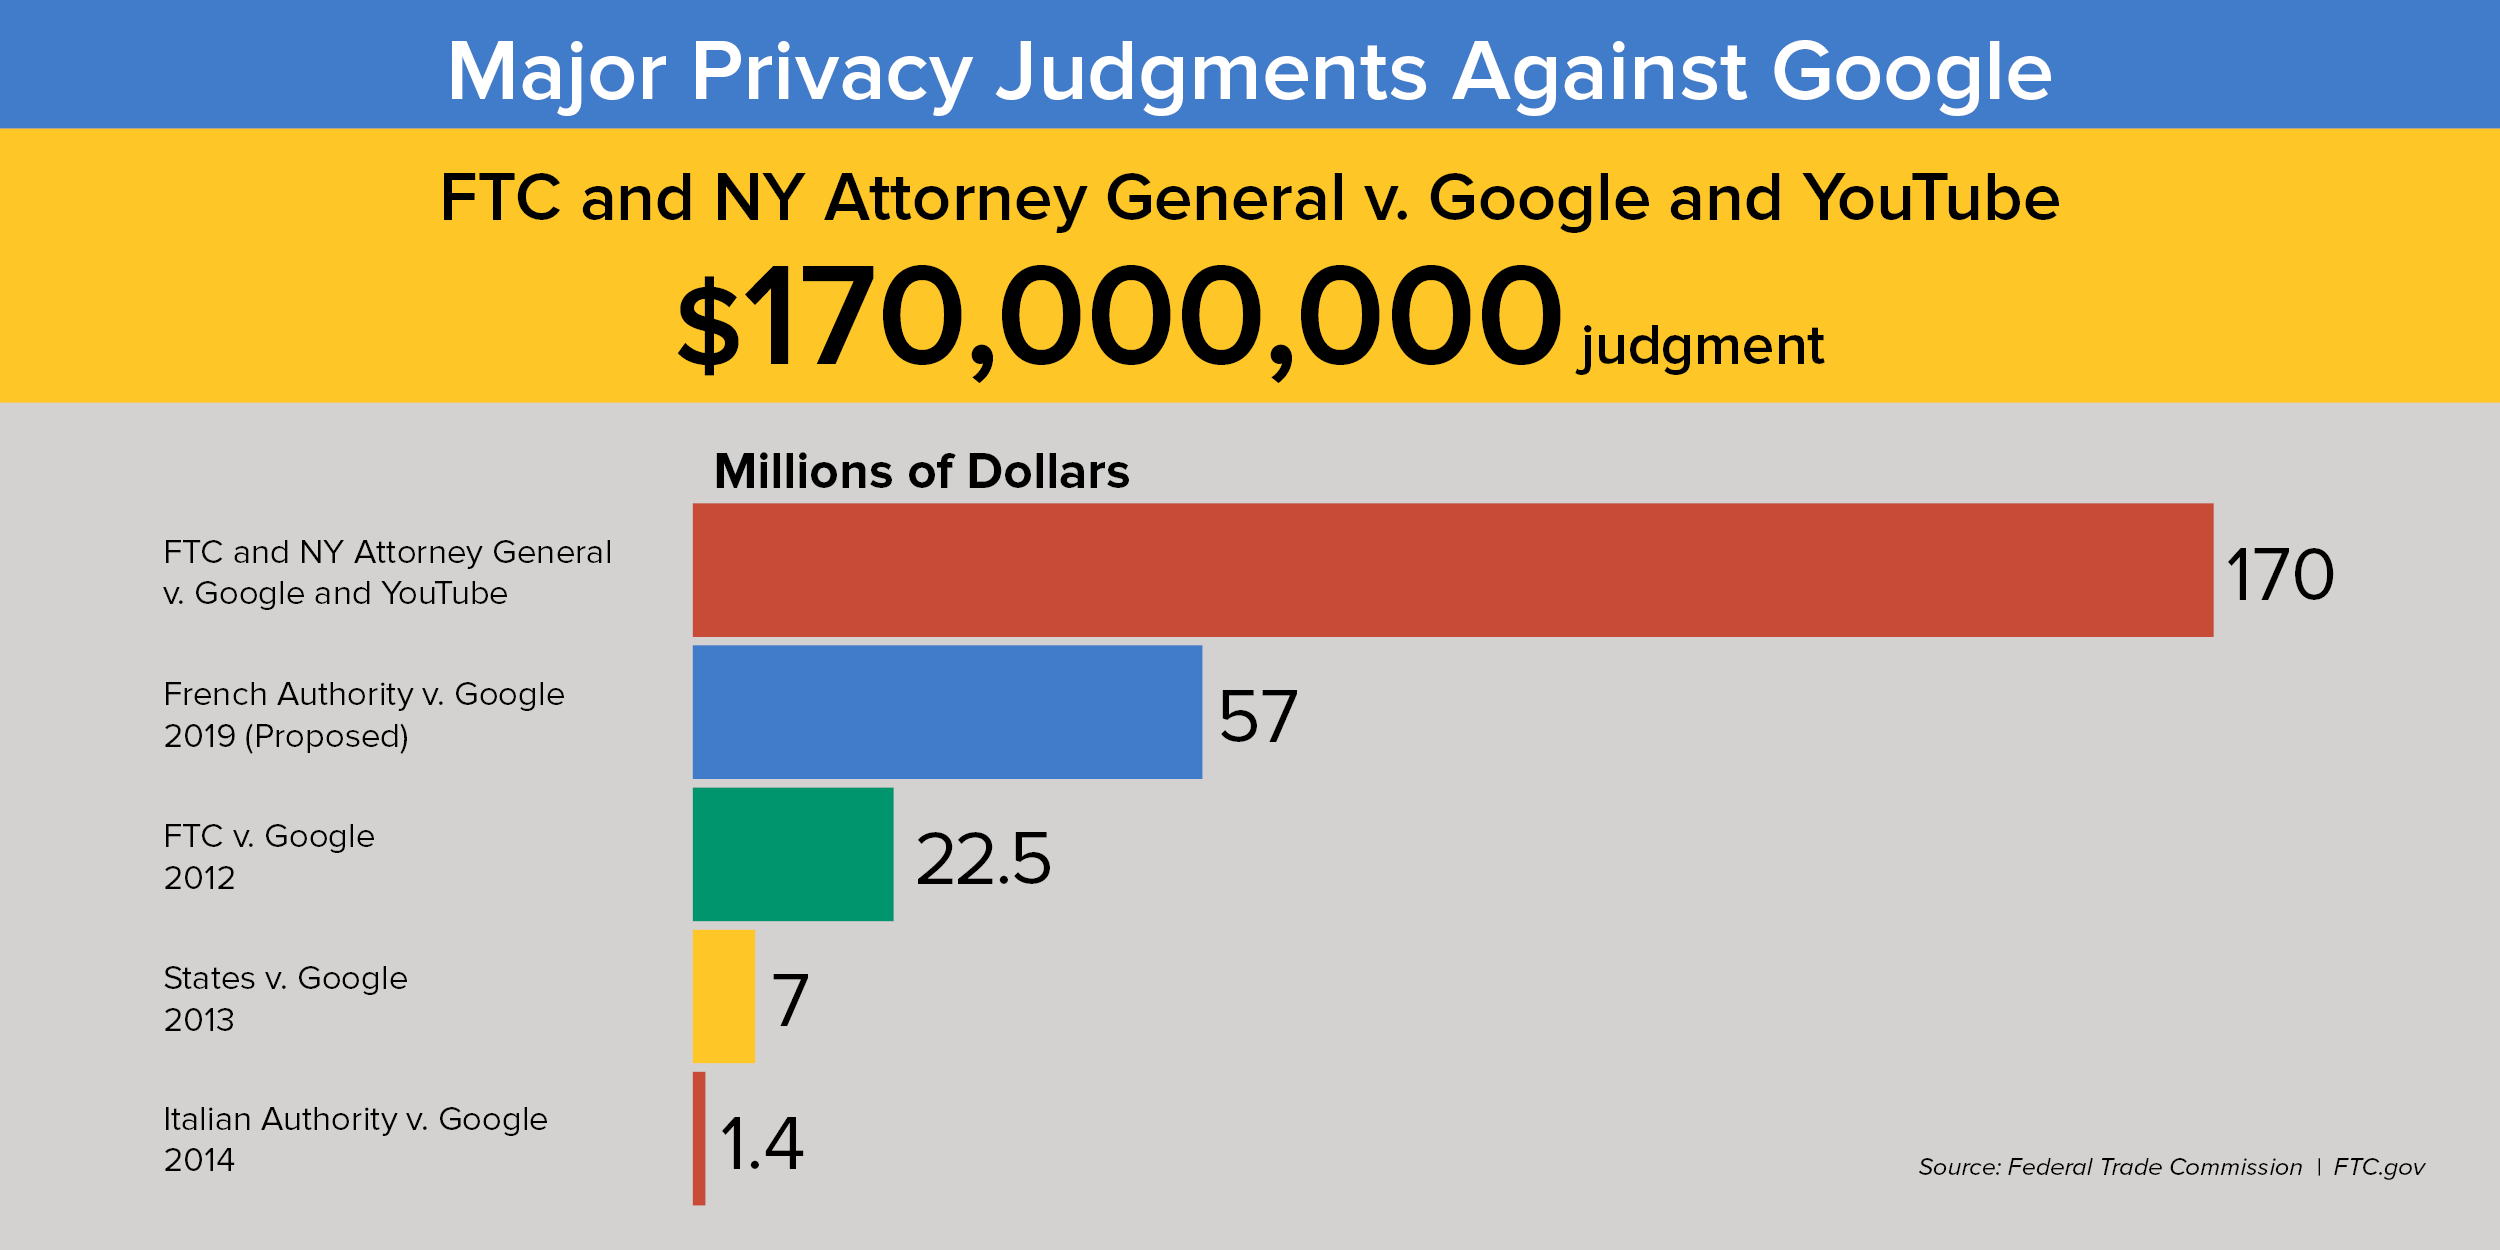 Major Privacy Judgements Against Google - FTC and NY Attorney General v. Google and YouTube ($170 million judgement). French Authority v. Google 2019 (Proposed): 57 million. FTC v. Google 2012: 22.5 million. States v. Google 2013: 7 million. Italian Authority v. Google 2014: 1.4 million